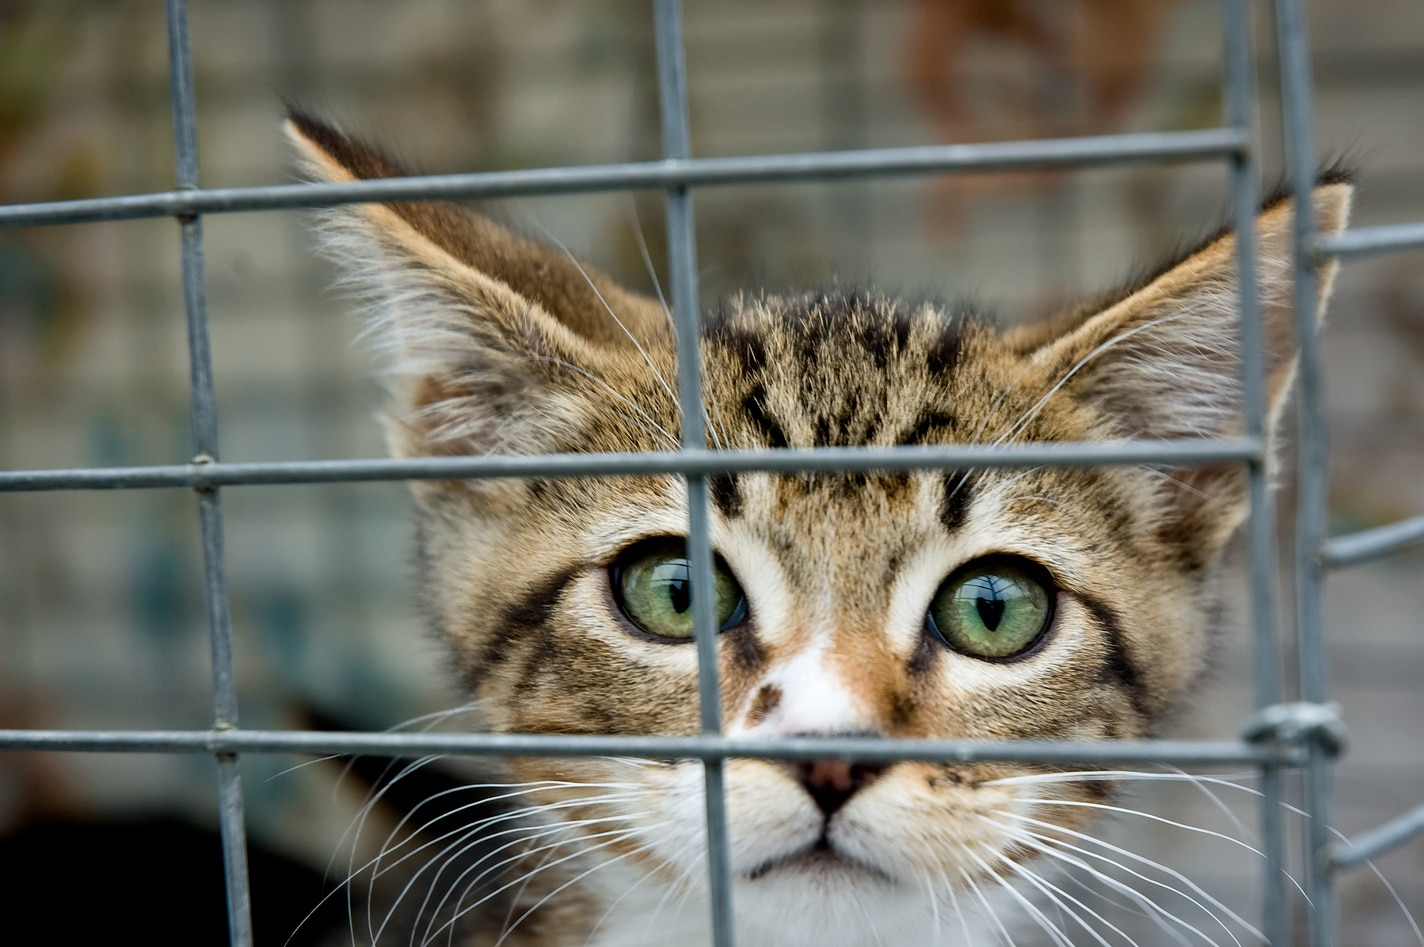 A kitten with green eyes staring out from a cage